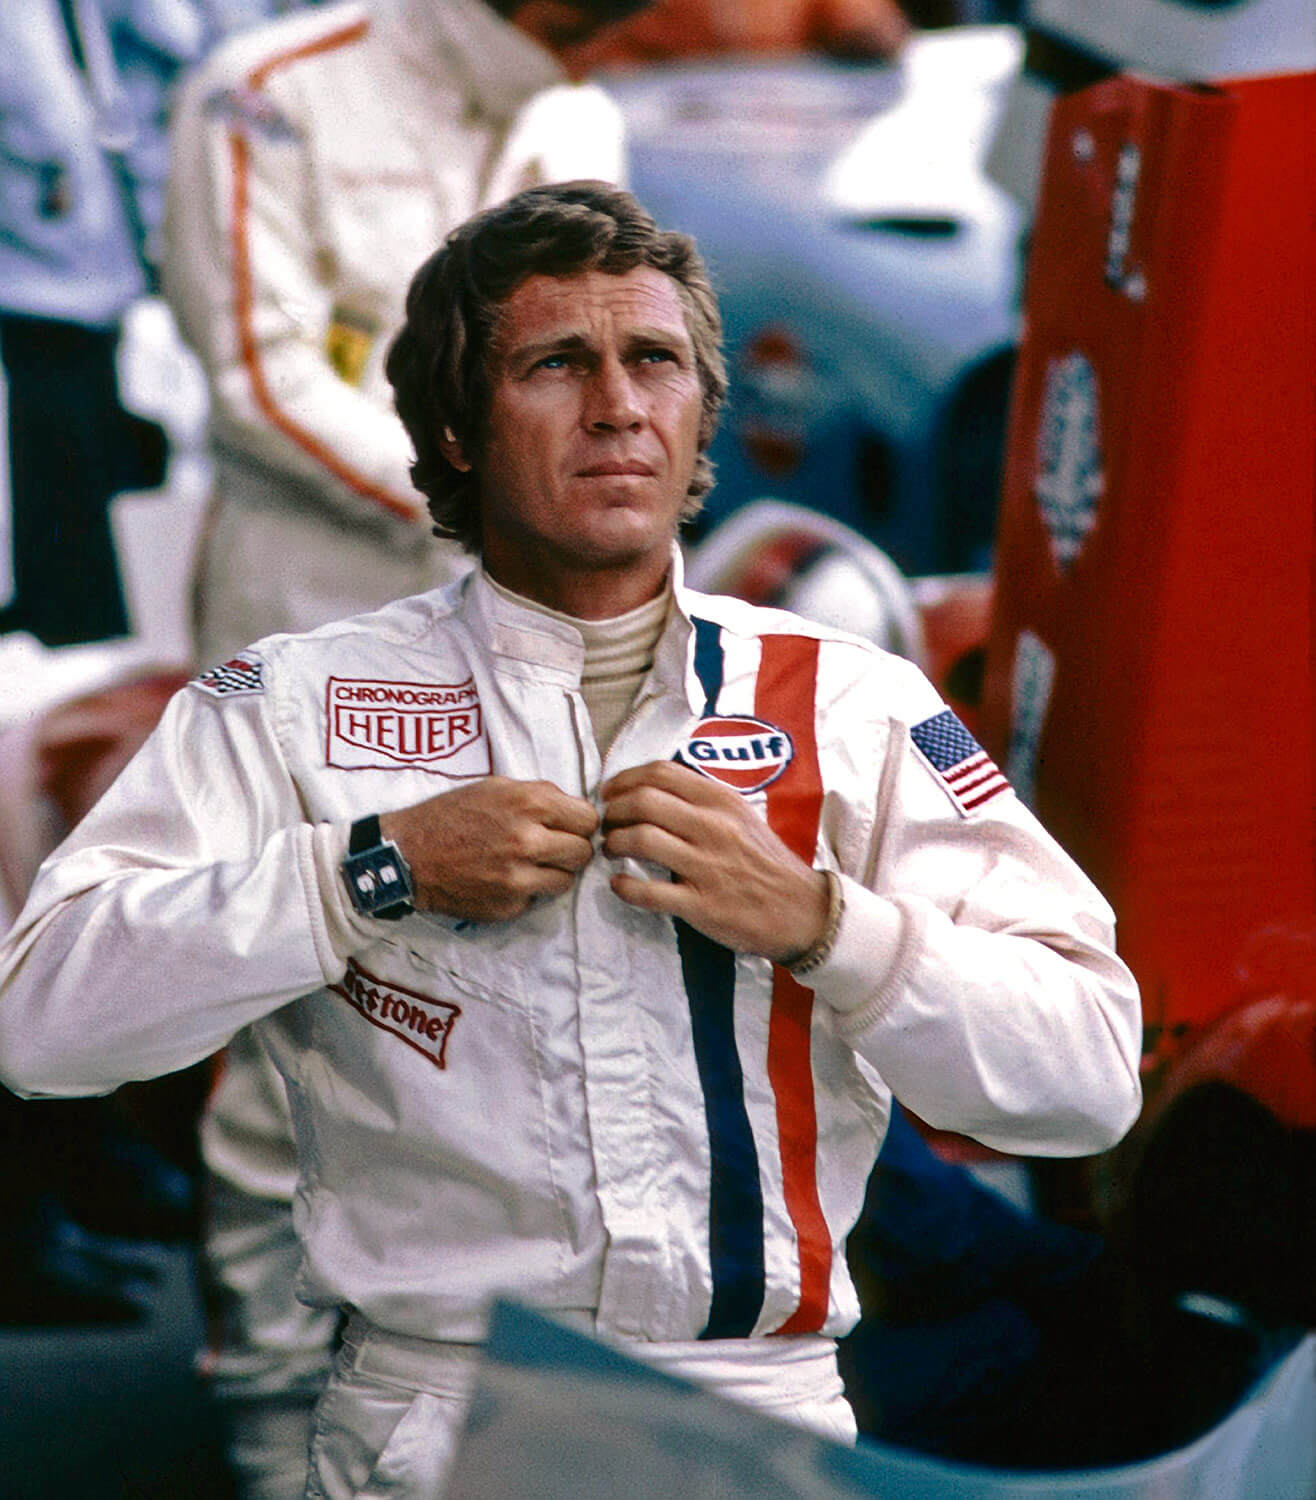 Steve McQueen wearing Heuer Monaco Le Mans movie 1971